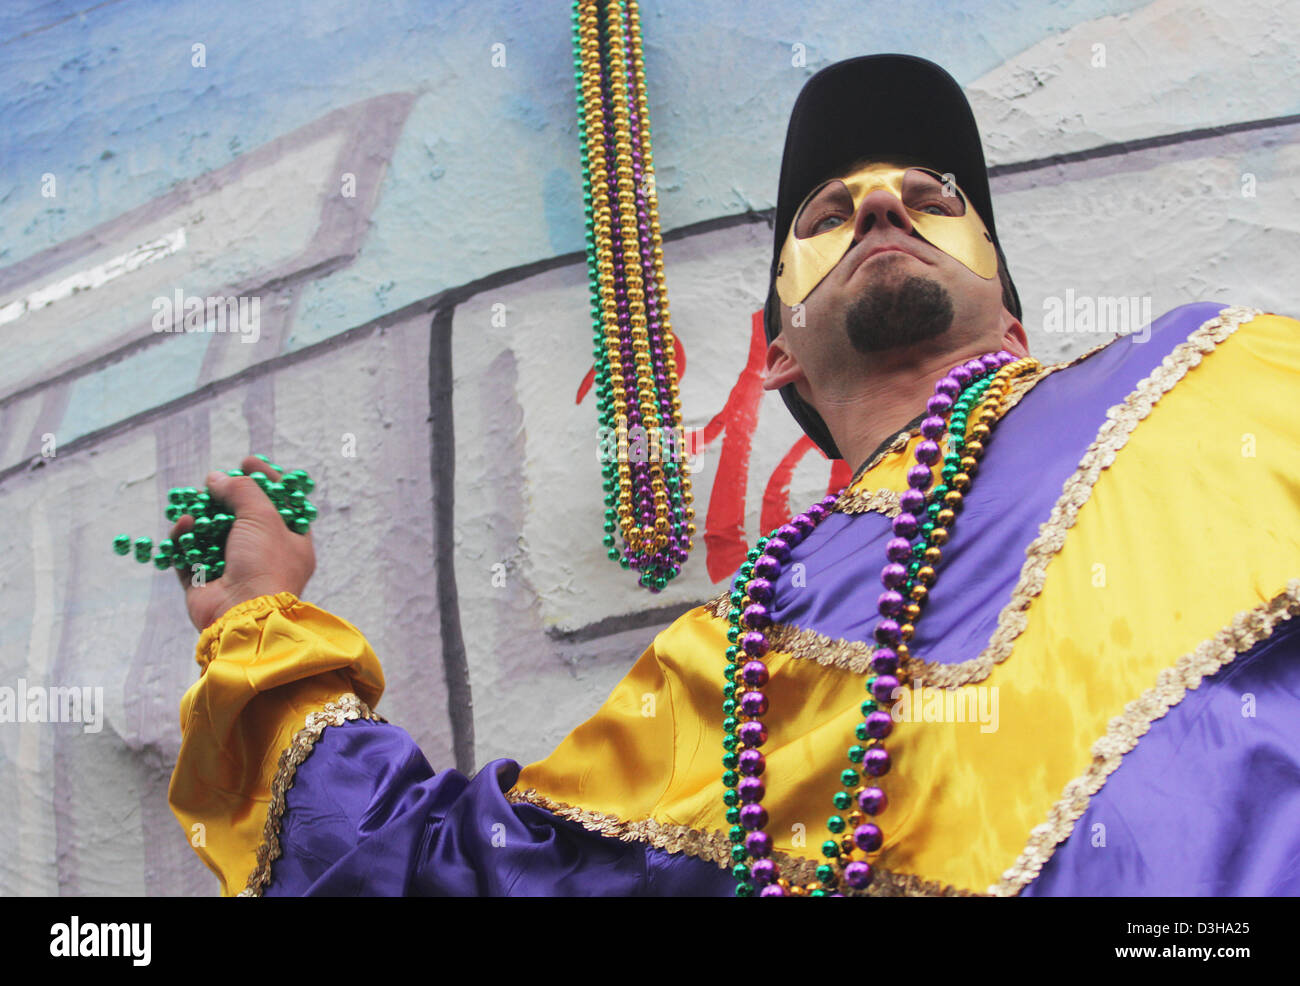 Feb. 10, 2013 - New Orleans, LOUISIANA, UNITED STATES - A masked float rider throws out beads during the Krewe of Stock Photo